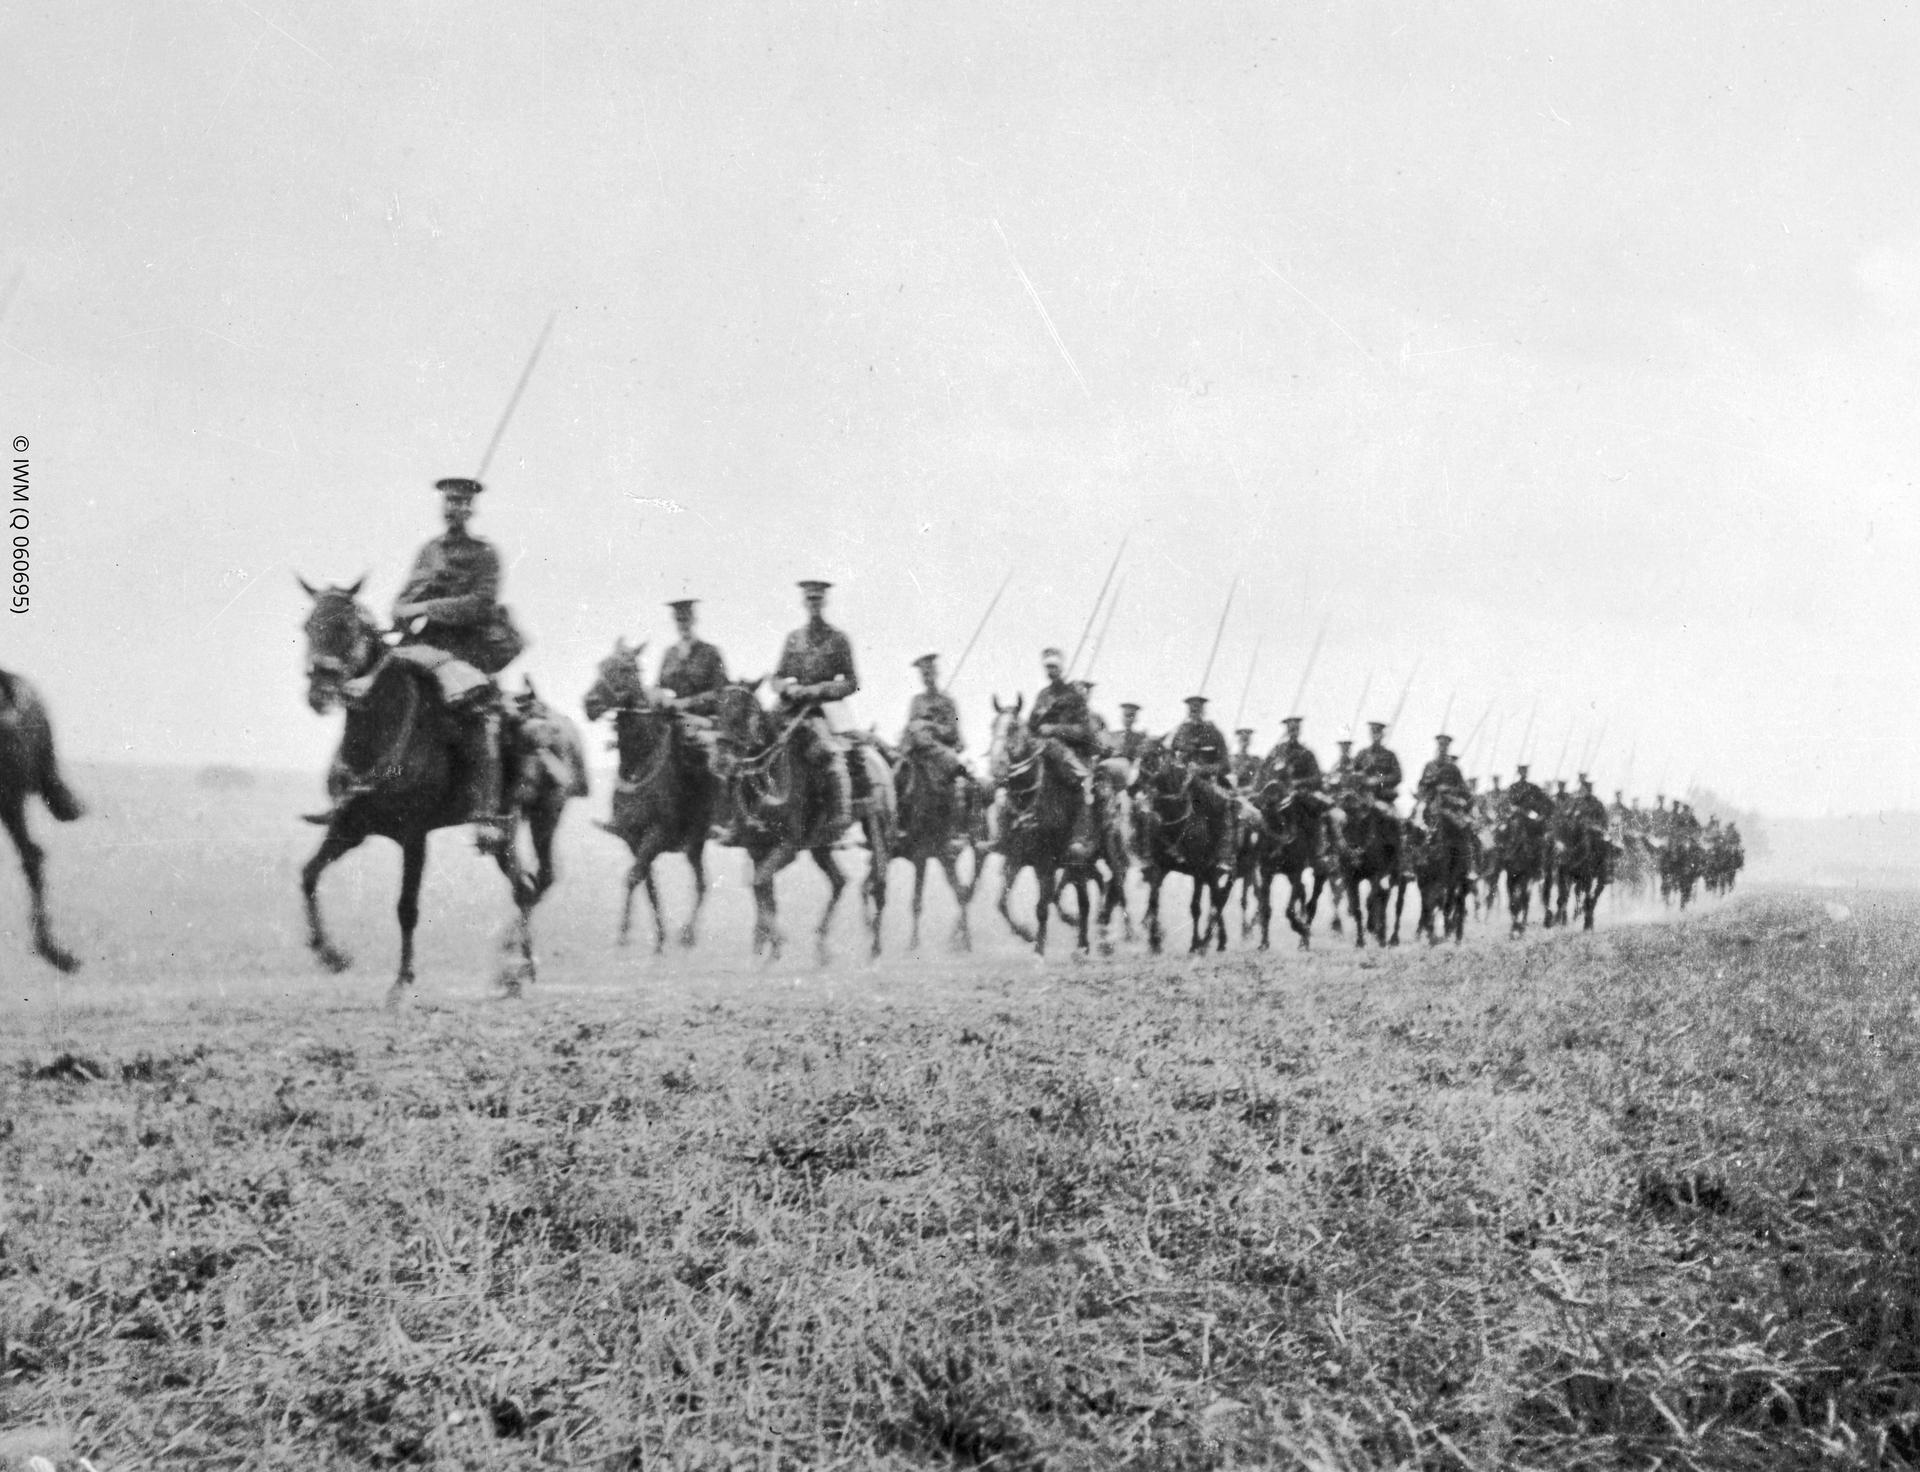 Photograph showing the men and horses of the Cavalry Division, British Expeditionary Force, retreat from Mons in August 1914.